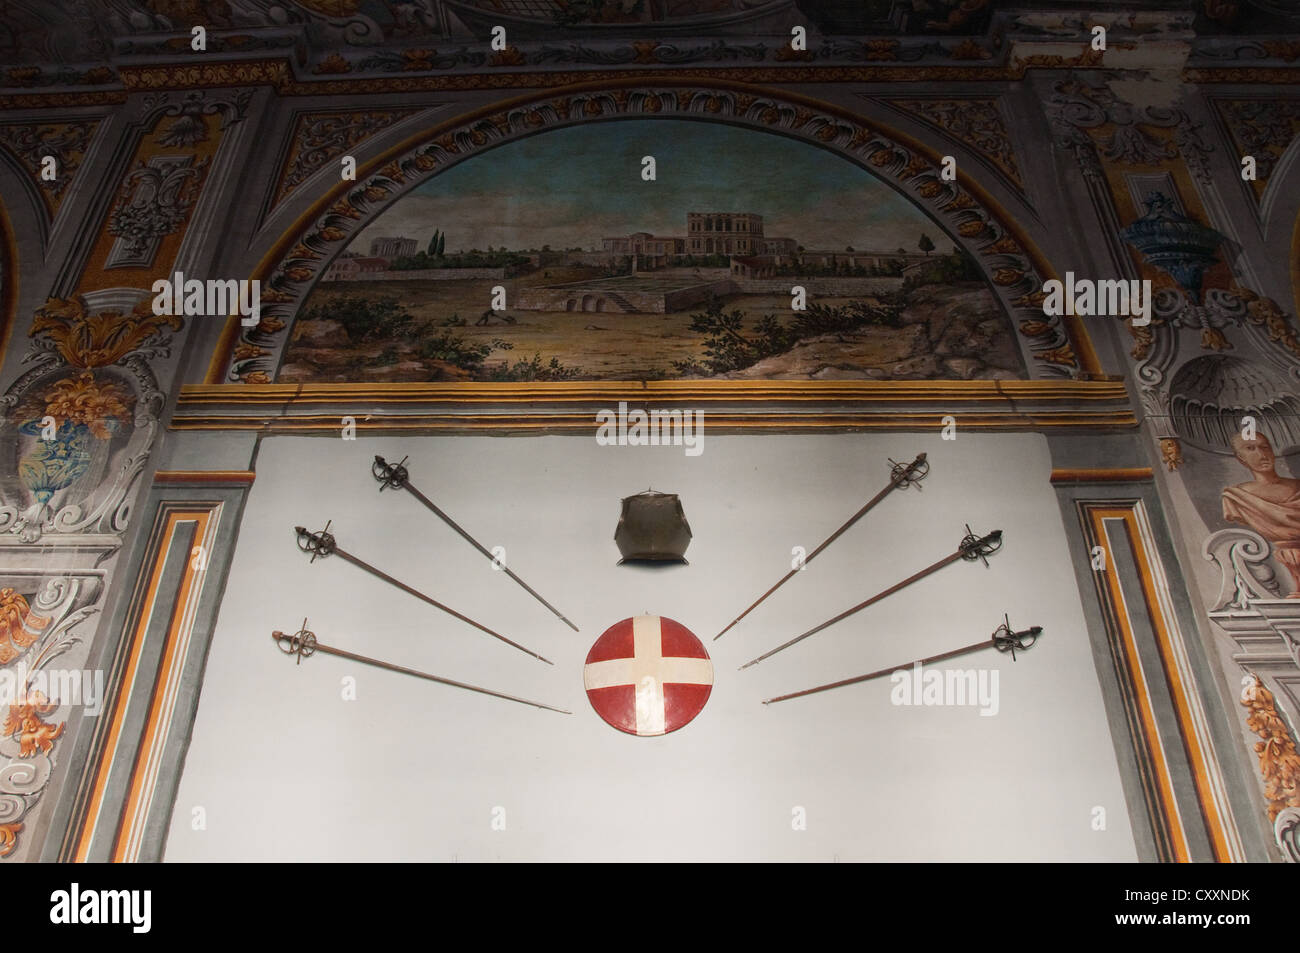 One of many trompe l'oeil paintings and armoury displays along the Armoury Corridor in the State Apartments - Stock Image